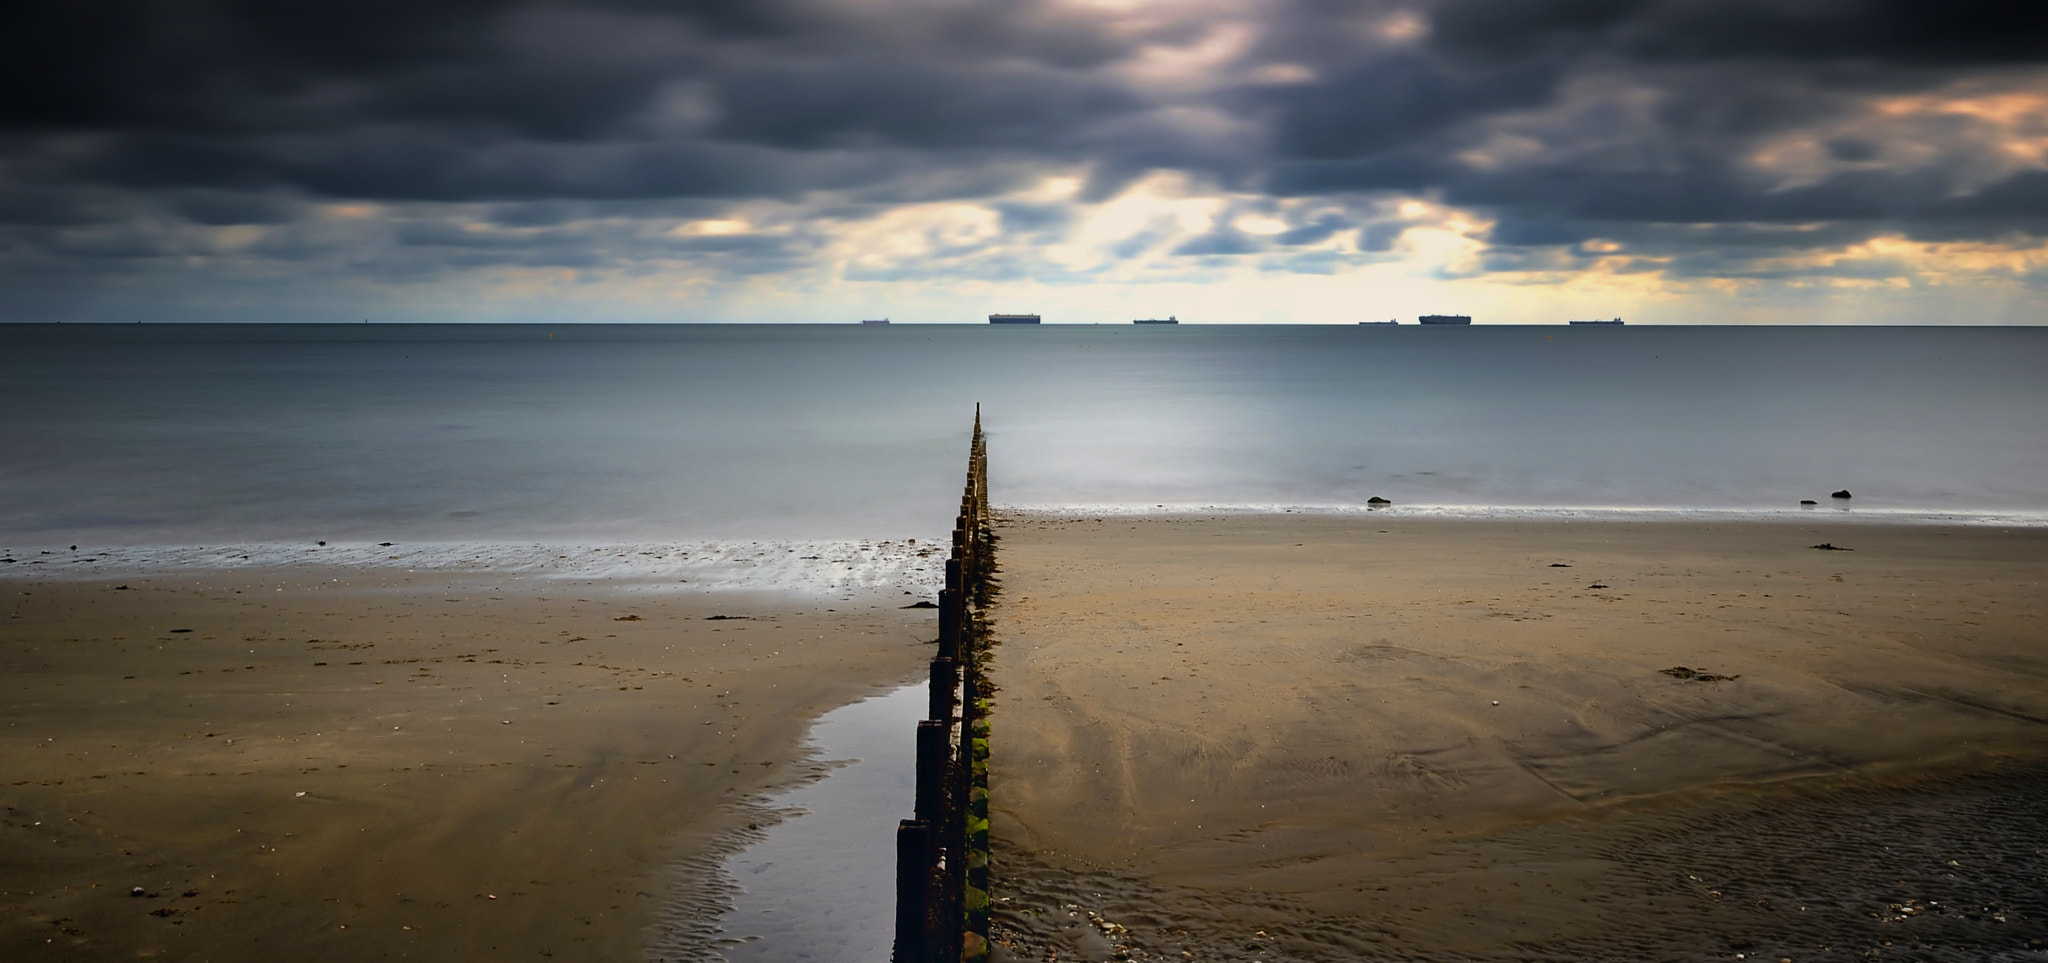 Photograph Out to sea - Sandown Bay (2) by John Barker on 500px